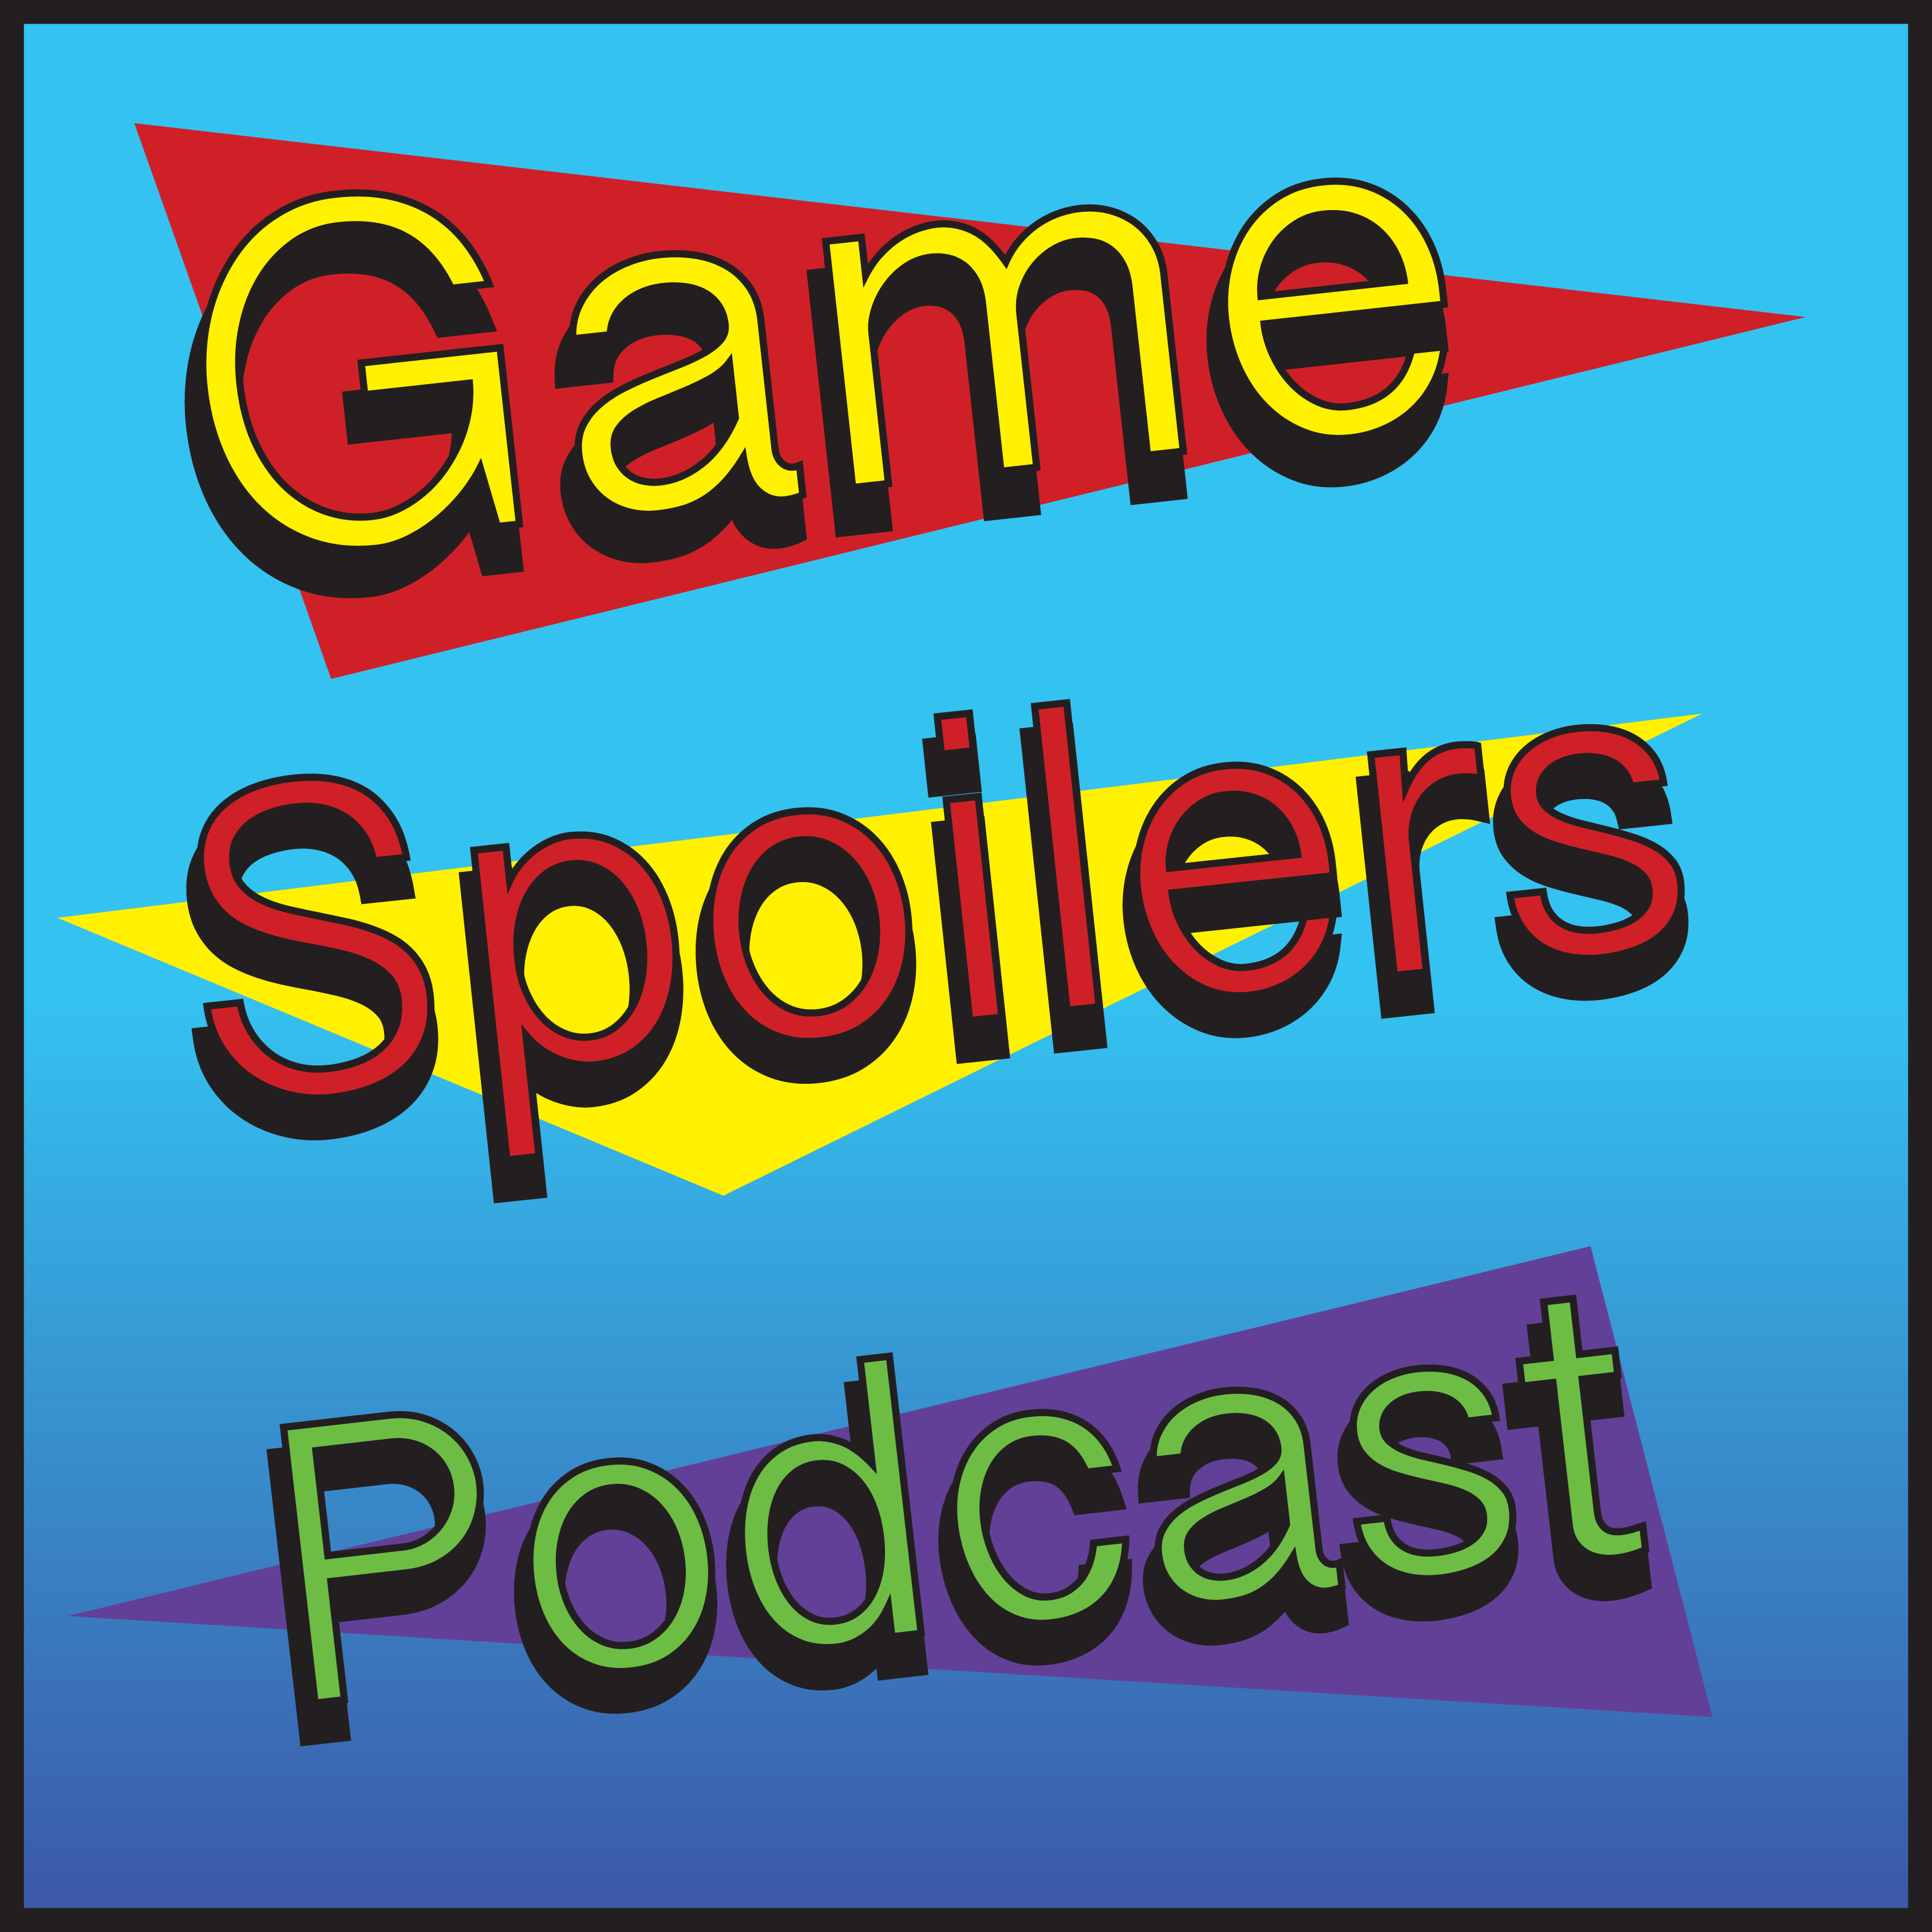 Game 20spoilers 20podcast 20logo 20test 06